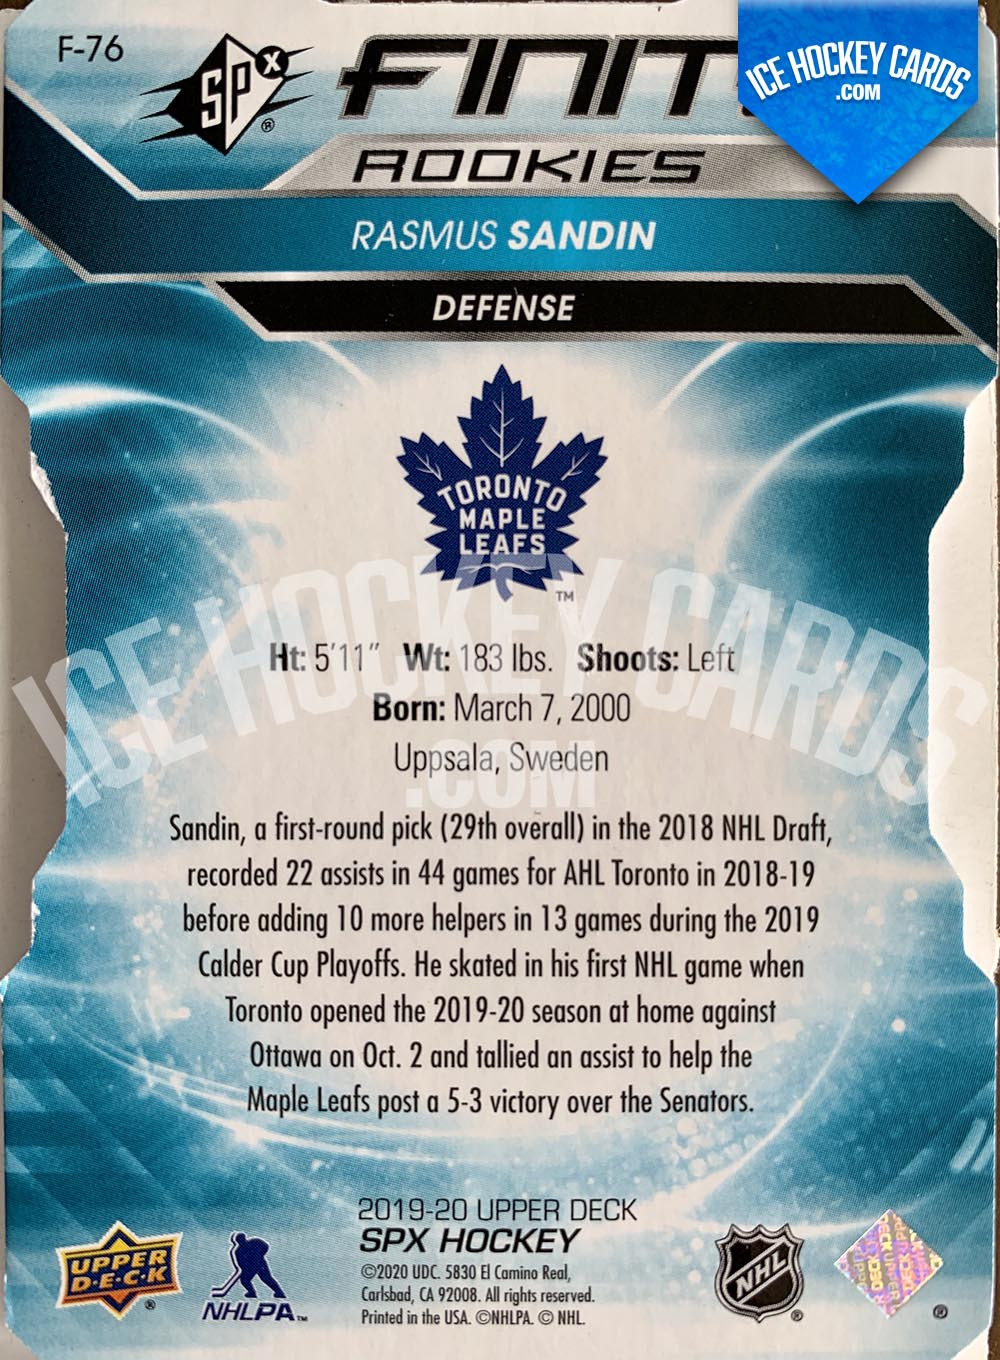 Upper Deck - SPx 2019-20 - Rasmus Sandin Finite Rookies Cut Rookie Card # to 5 SUPER RARE back